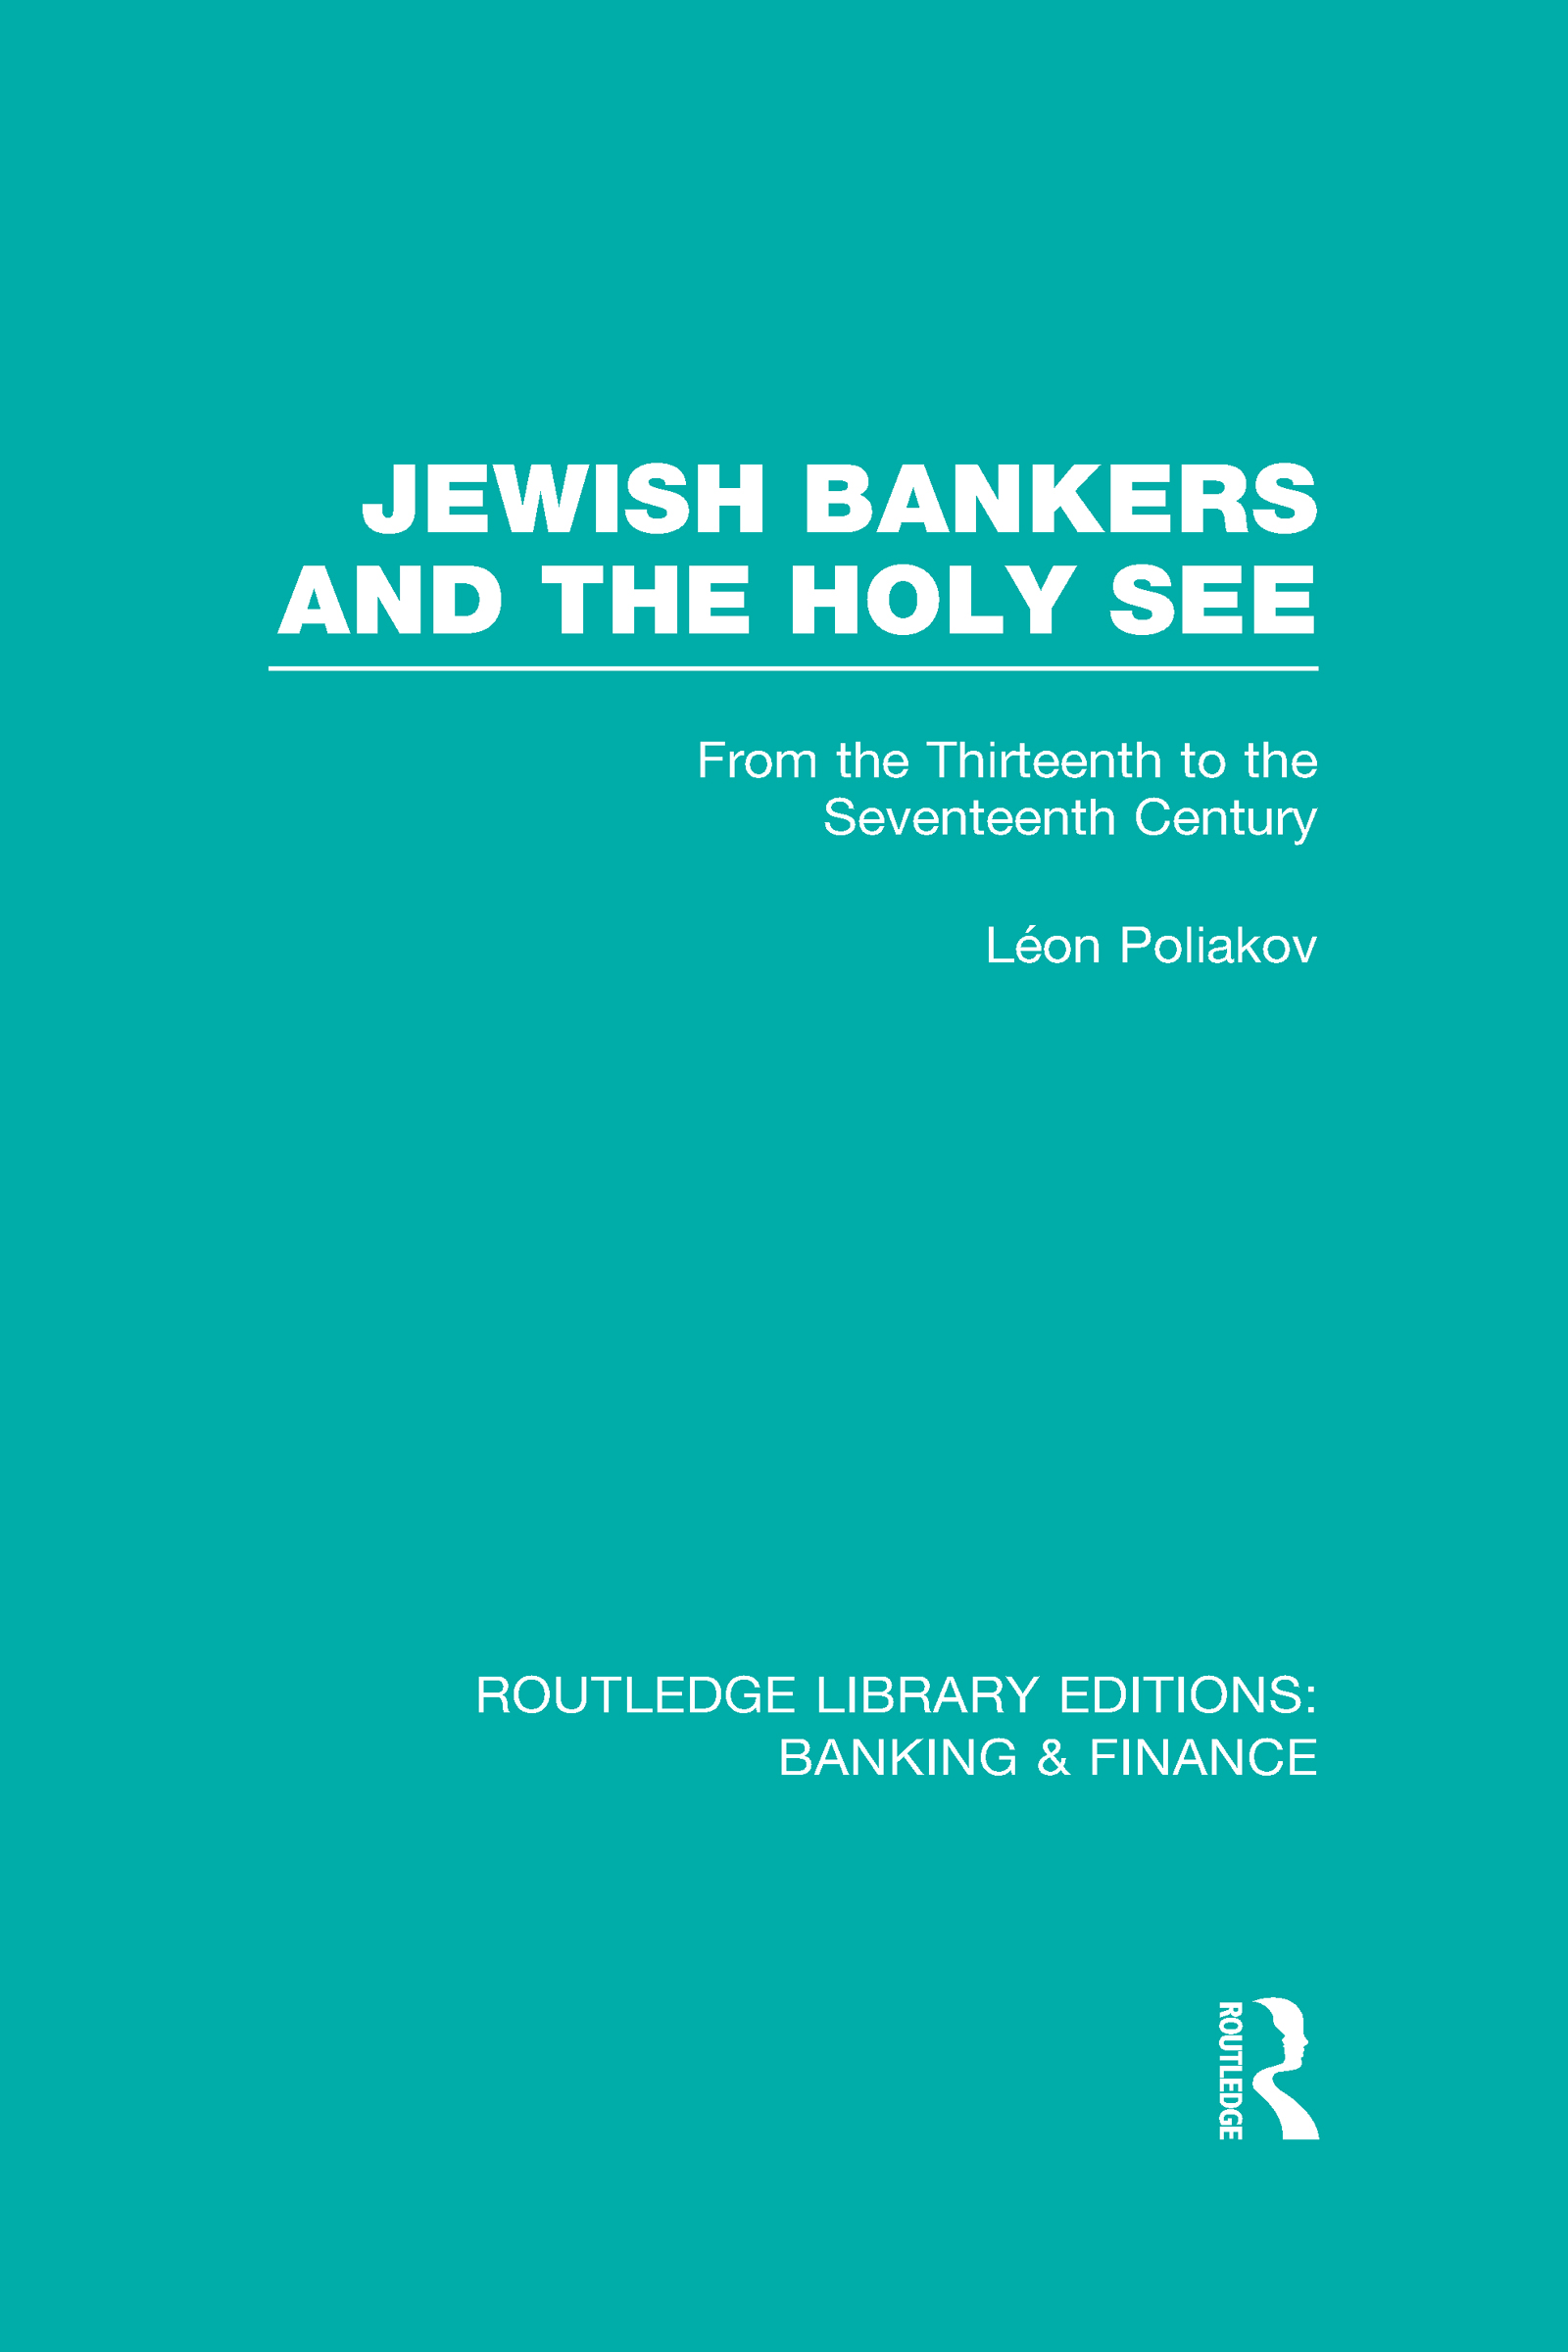 Jewish Bankers and the Holy See (RLE: Banking & Finance): From the Thirteenth to the Seventeenth Century (Hardback) book cover